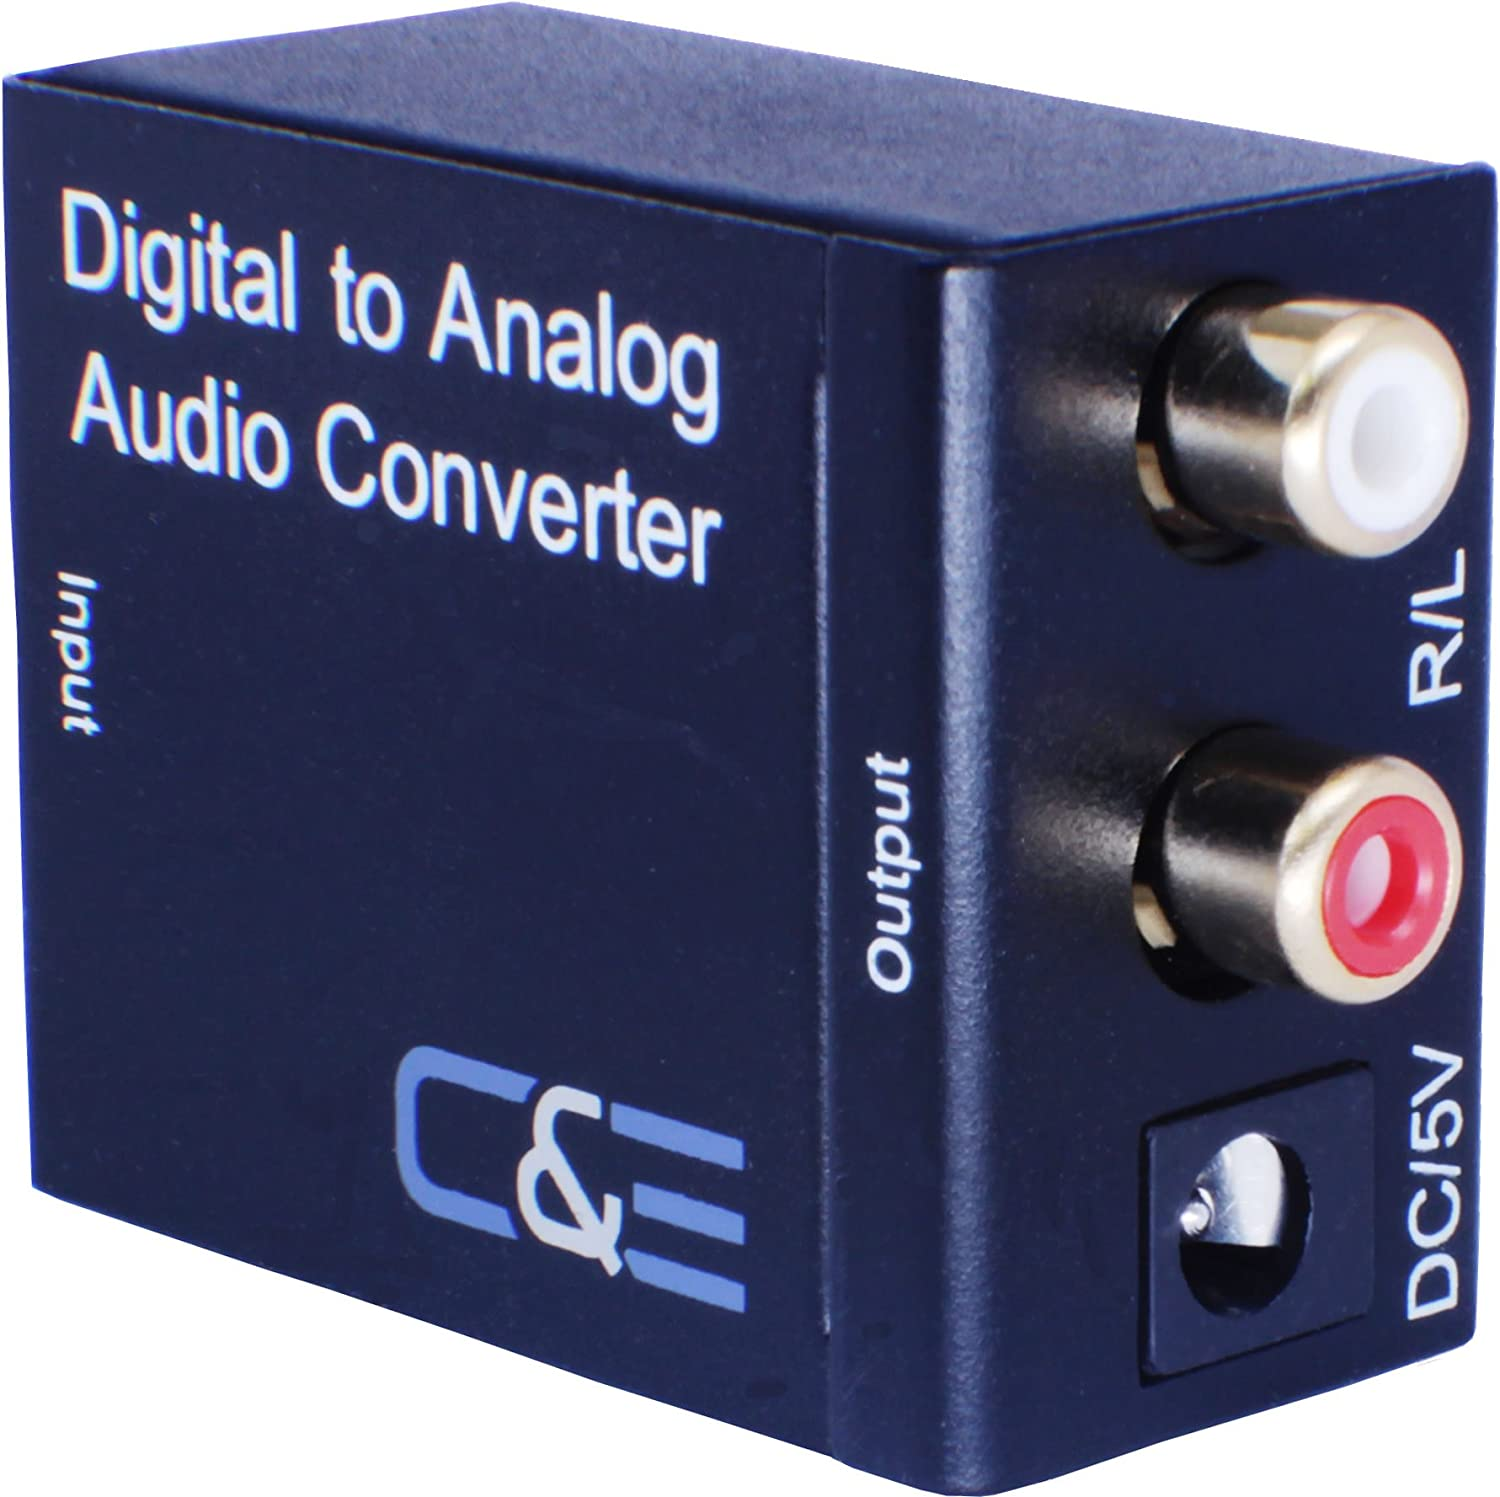 C&E Digital Optical Coax to Analog R/L audio converter Margin Mart CNE723225